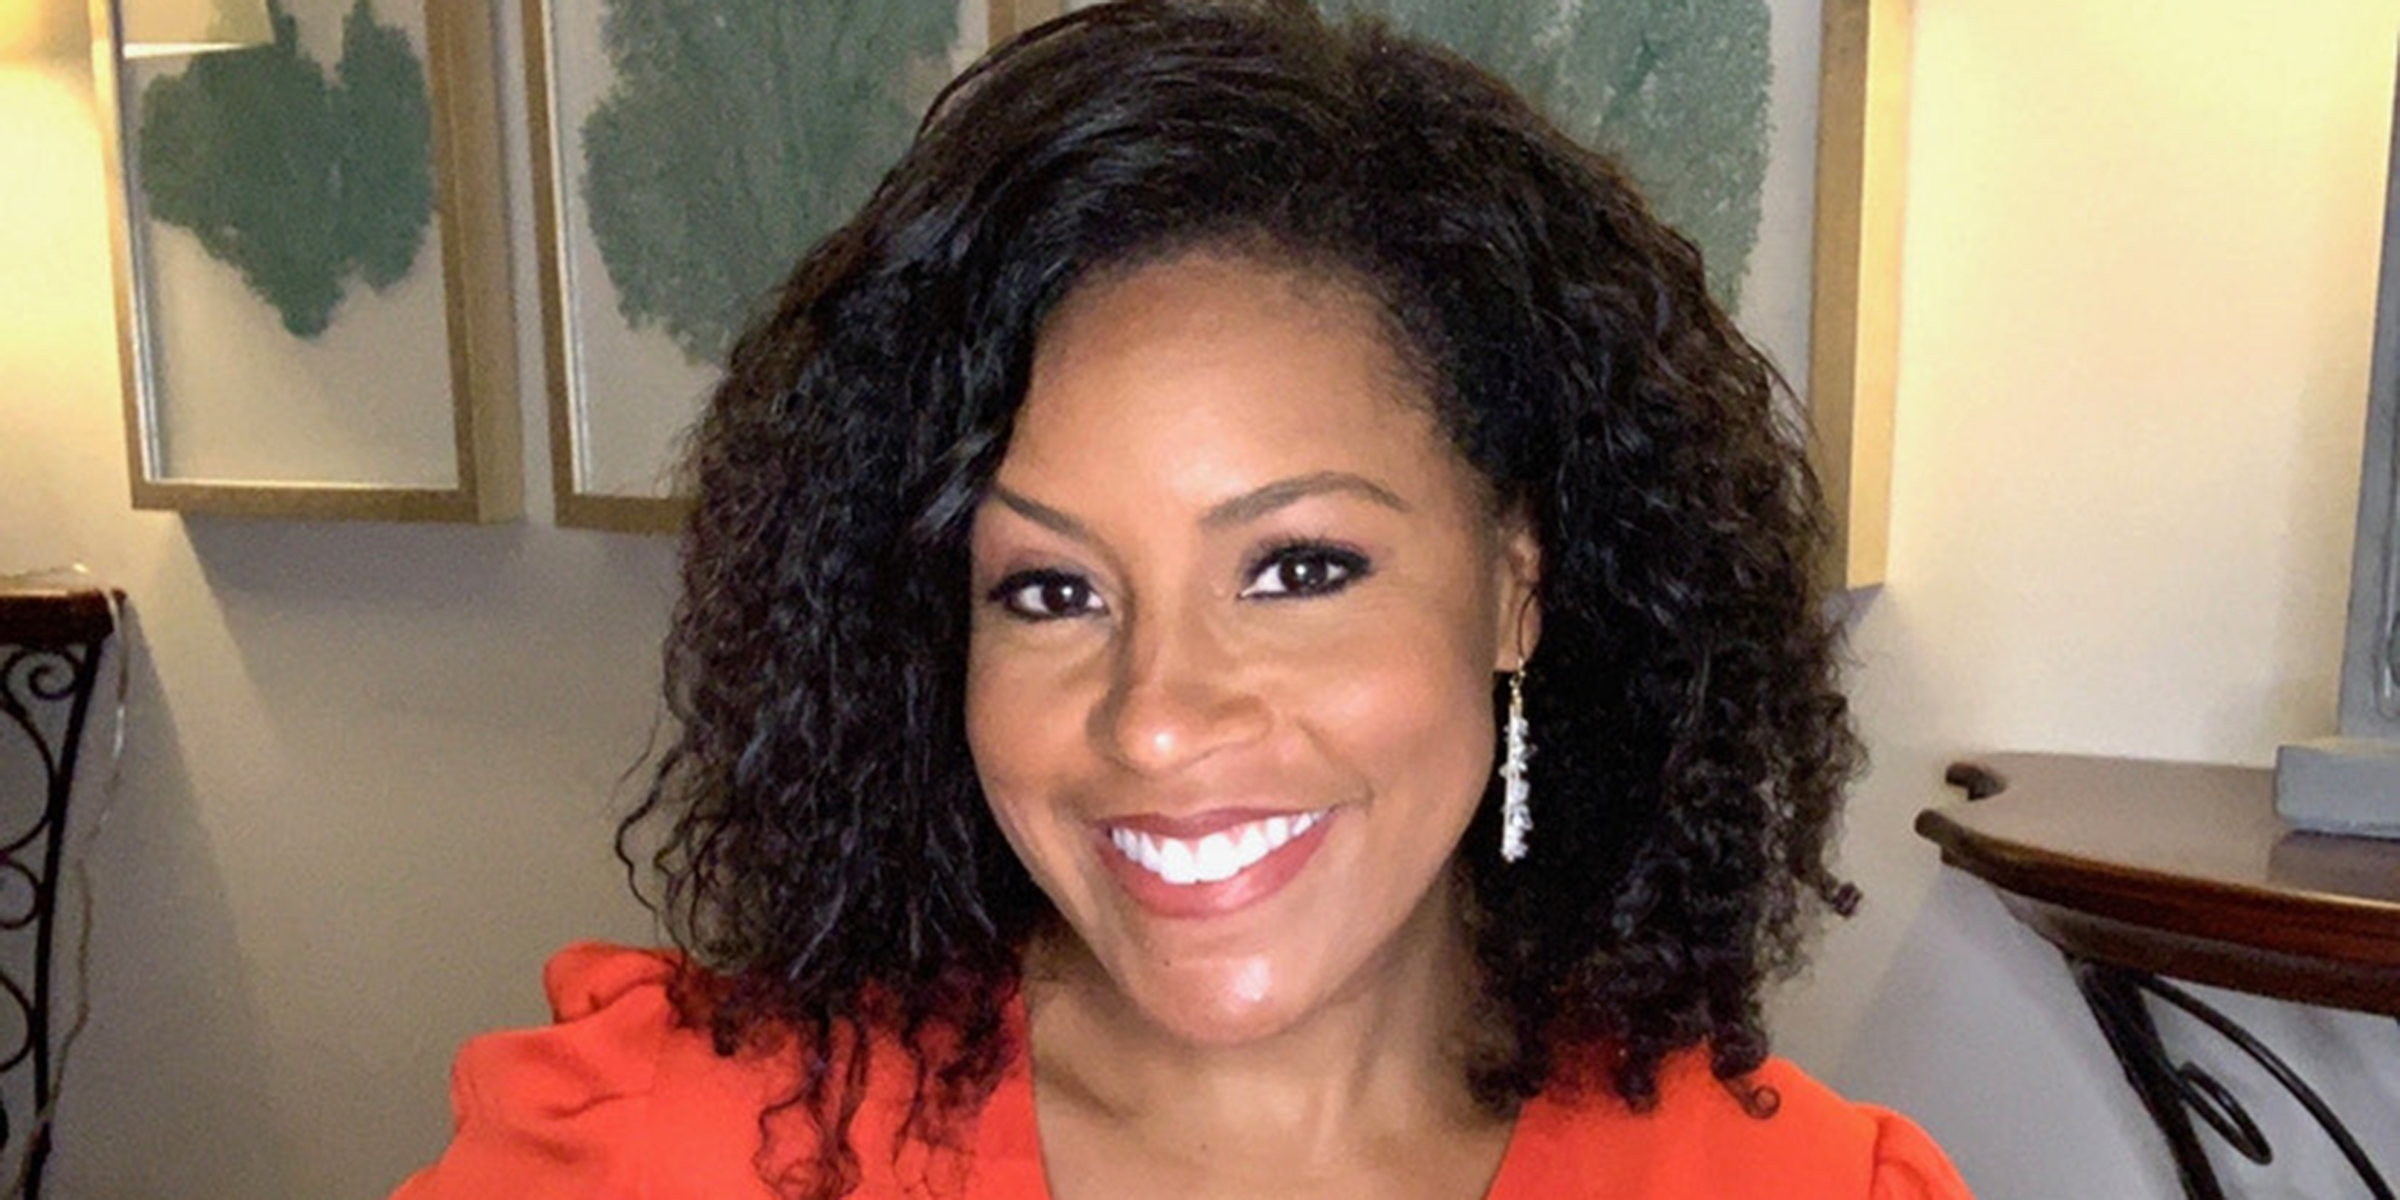 Sheinelle Jones Explains Why She S Embracing Her Natural Hair On Air